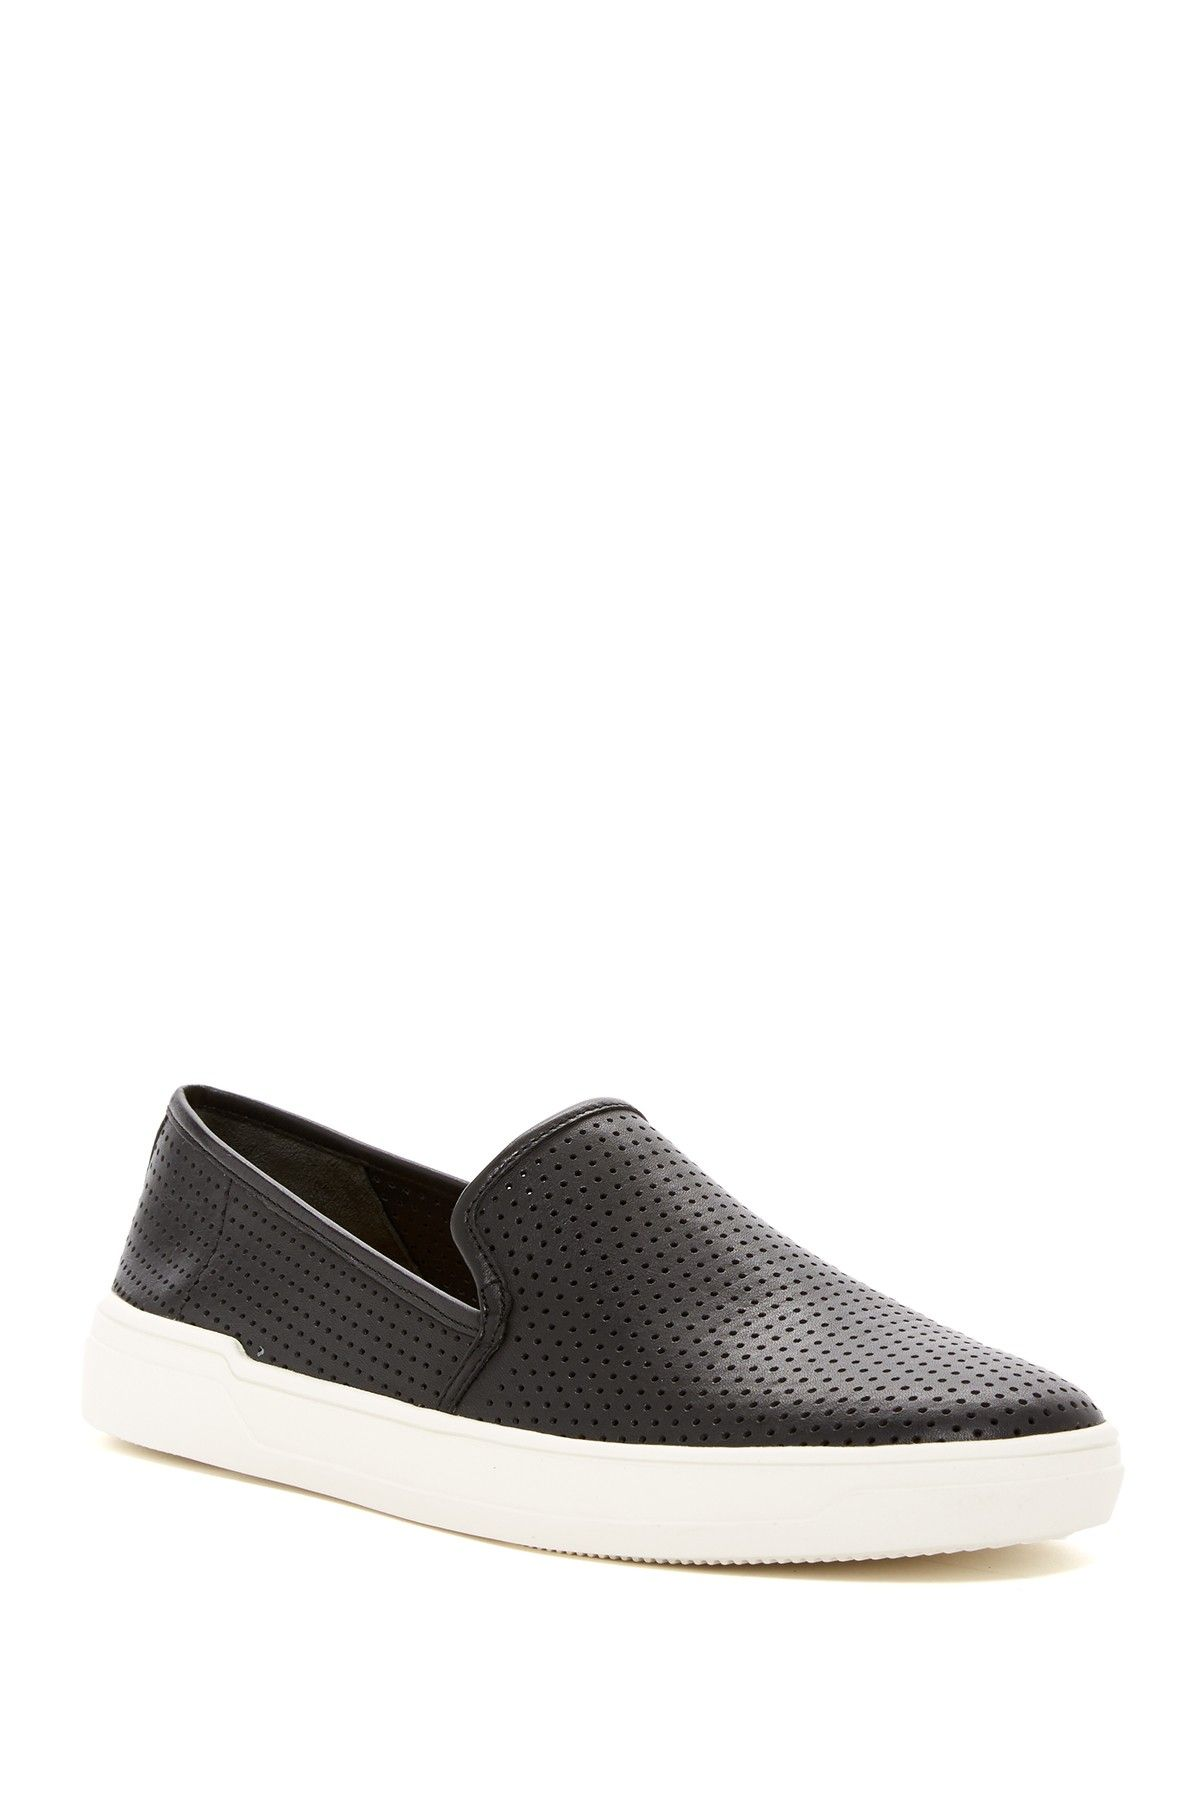 737bcefcd66 Galea Perforated Leather Slip-On Sneaker